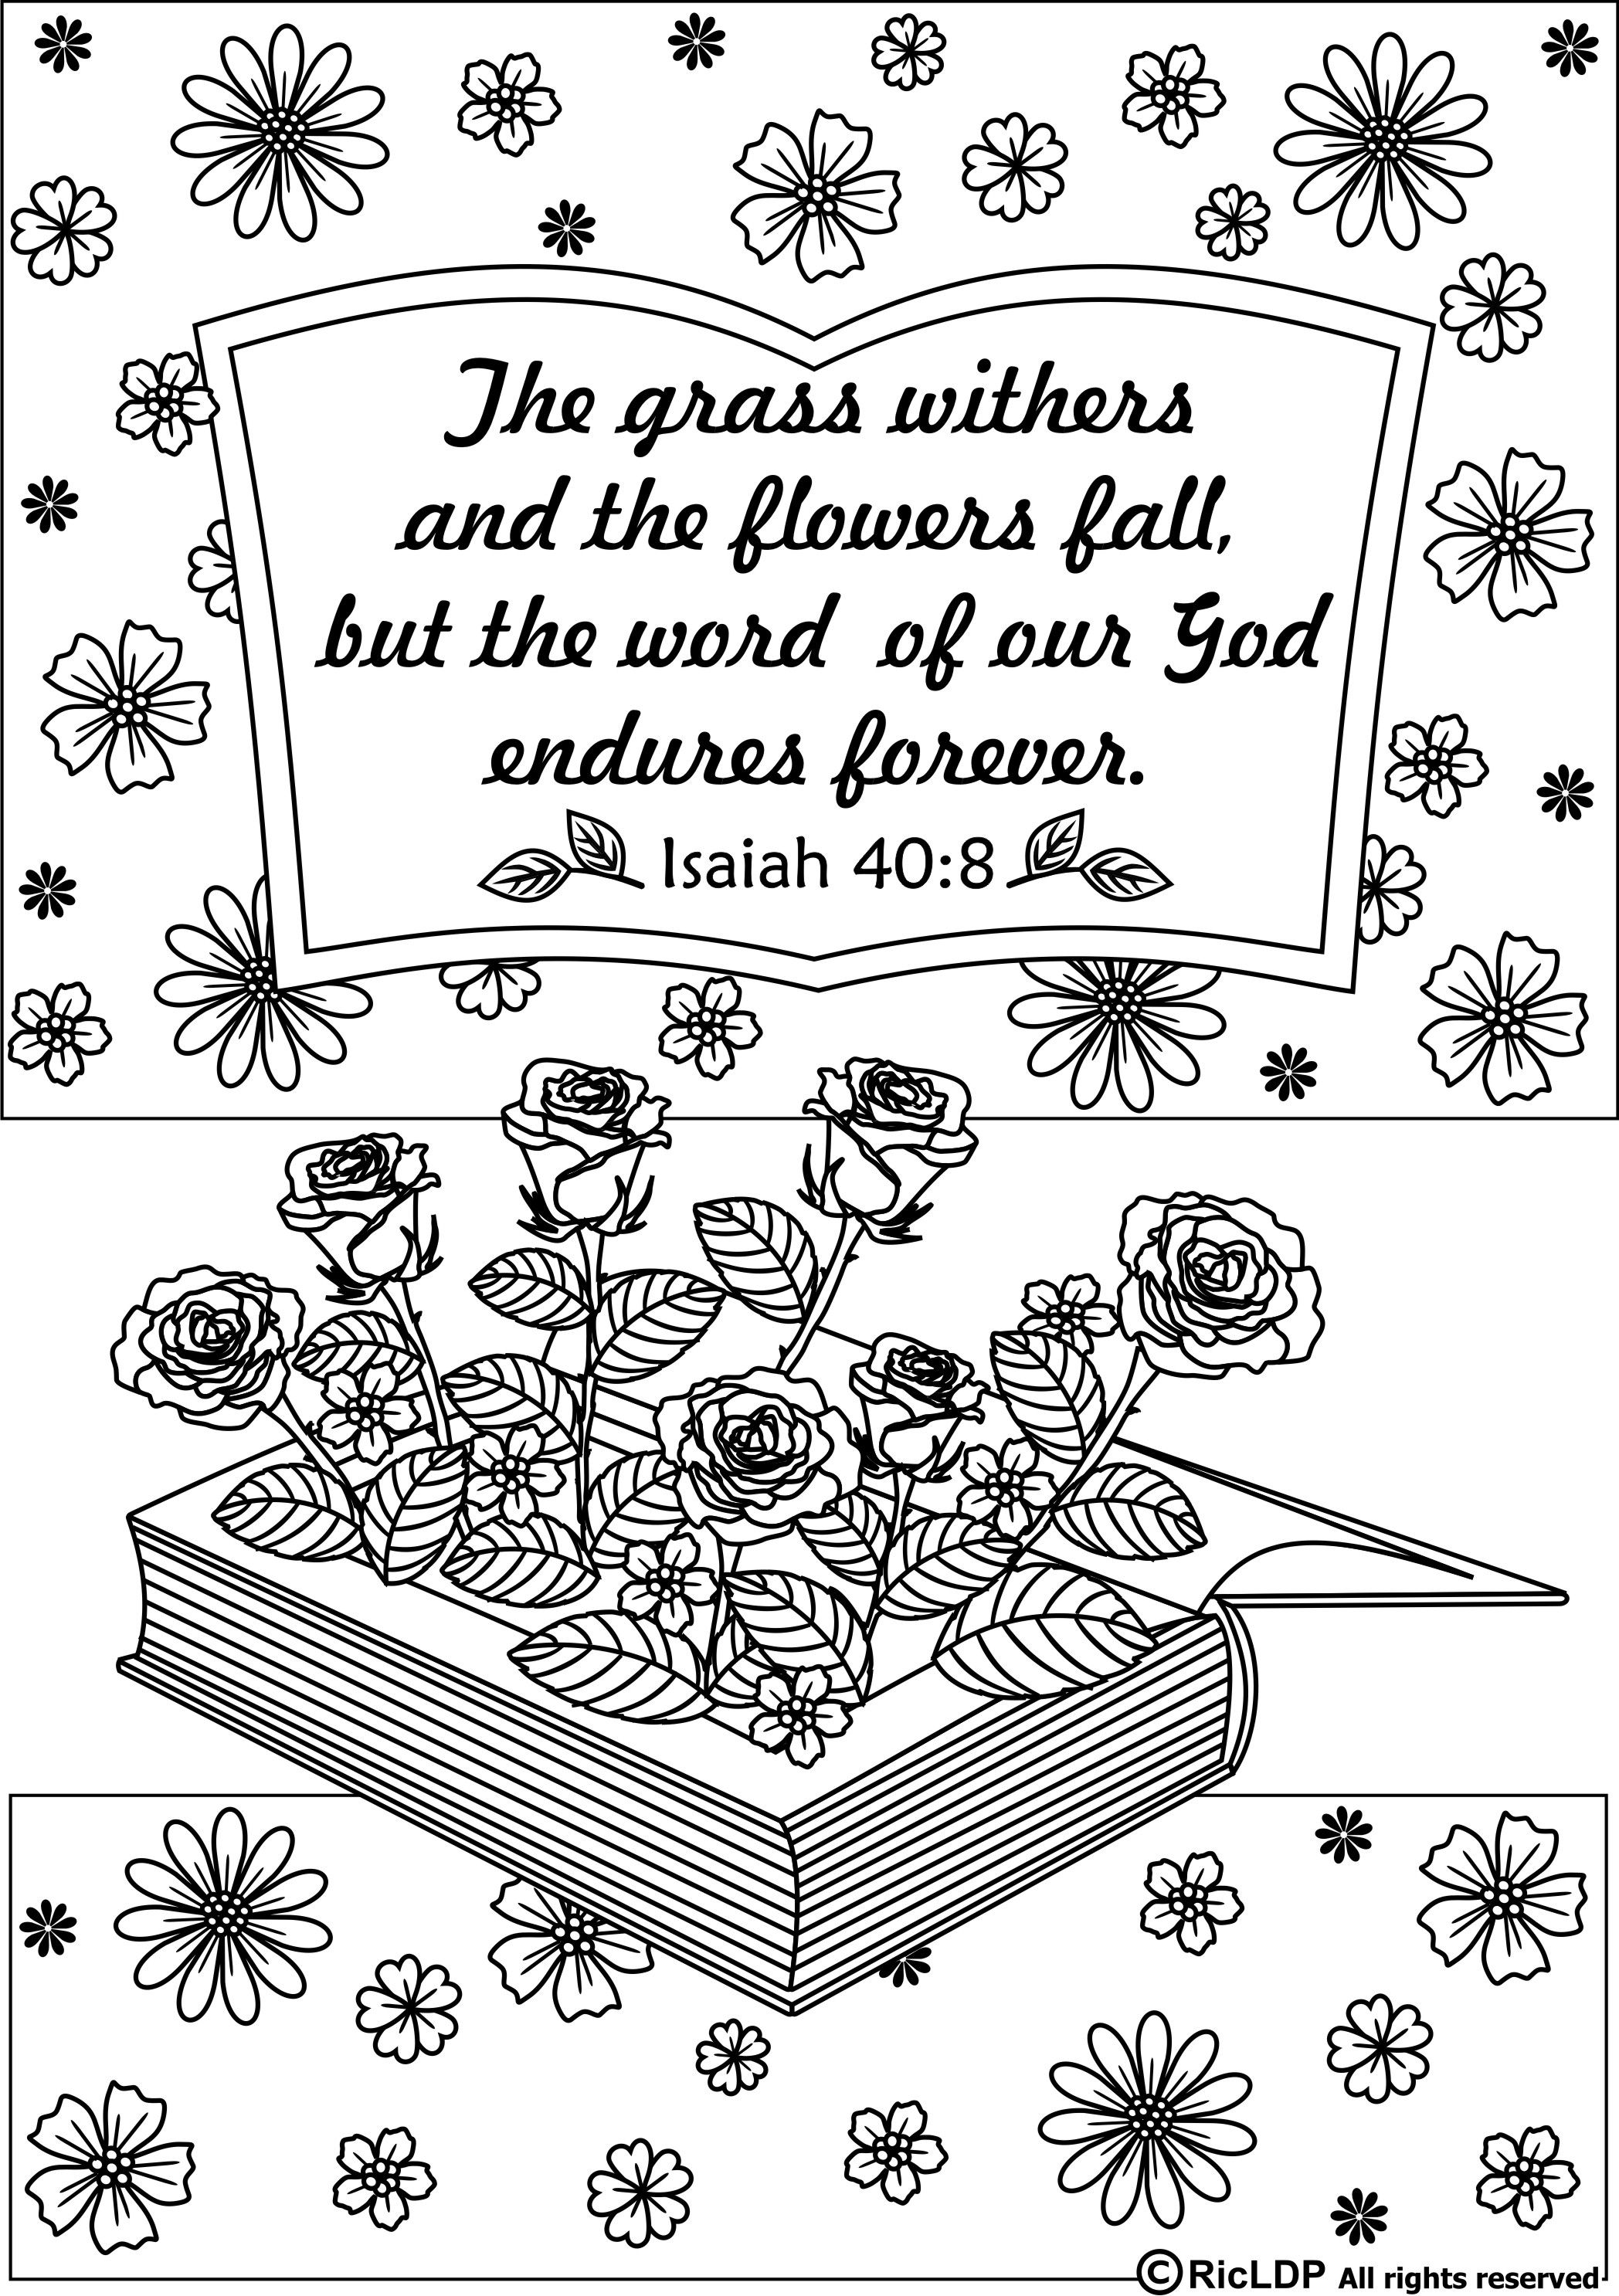 15 Bible Verses Coloring Pages | Coloring Pages | Bible